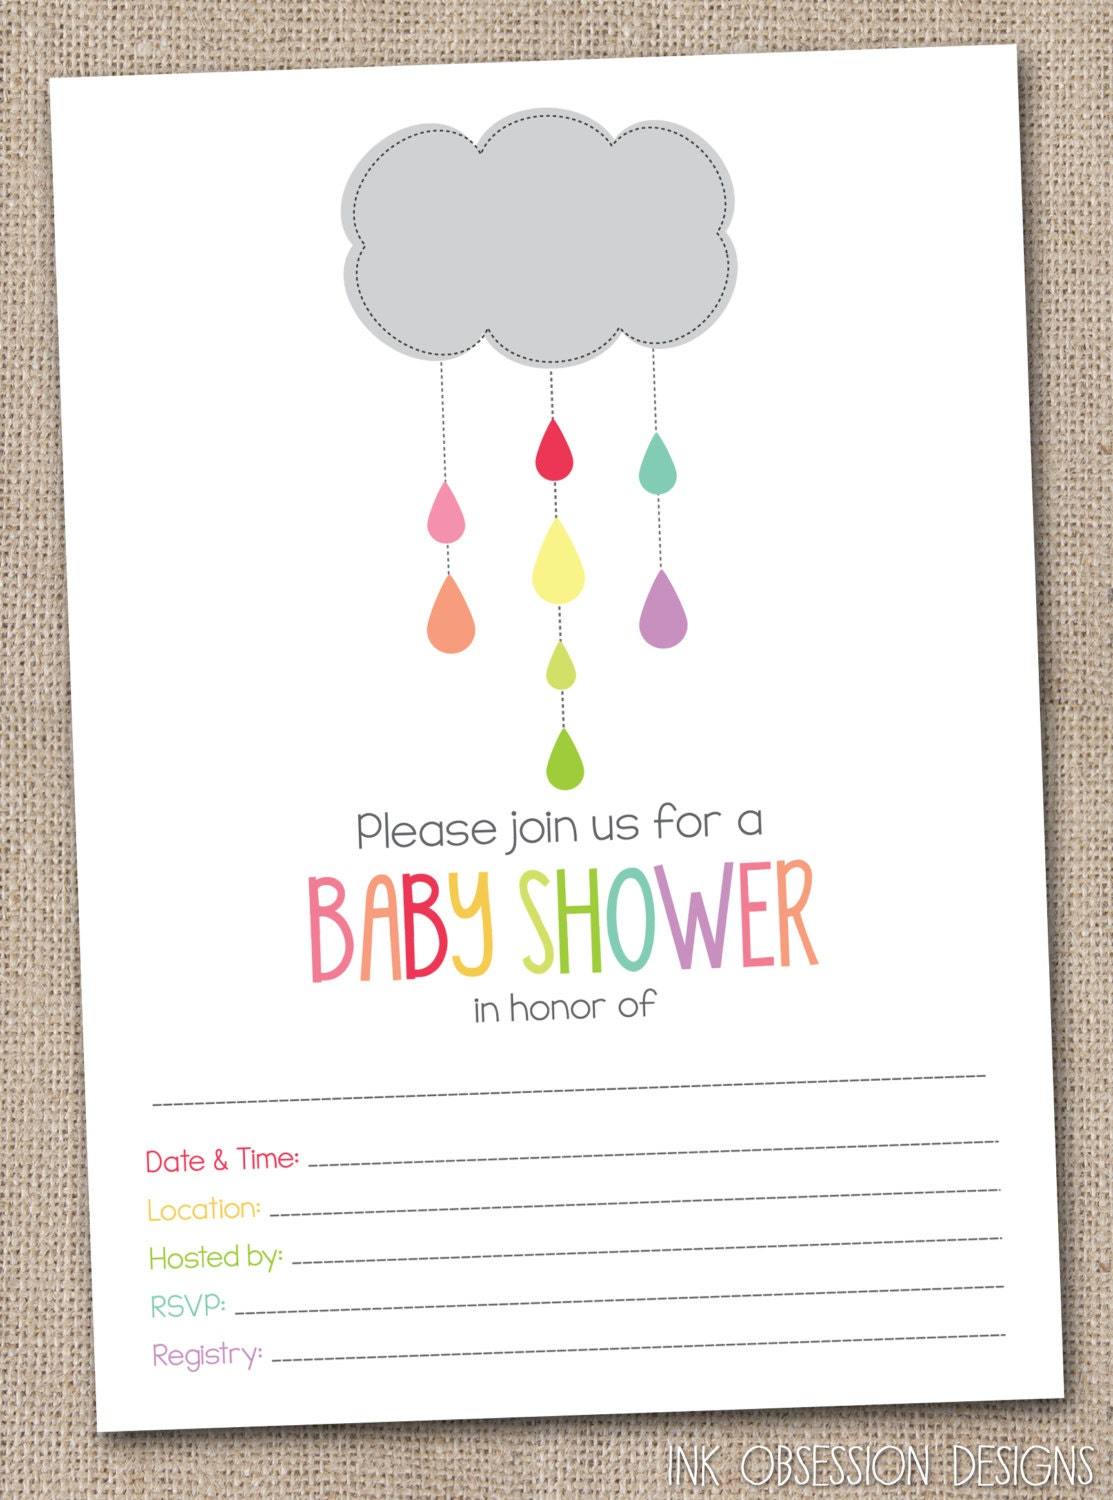 Instant download baby shower invitations by inkobsessiondesigns for Instant download invitations